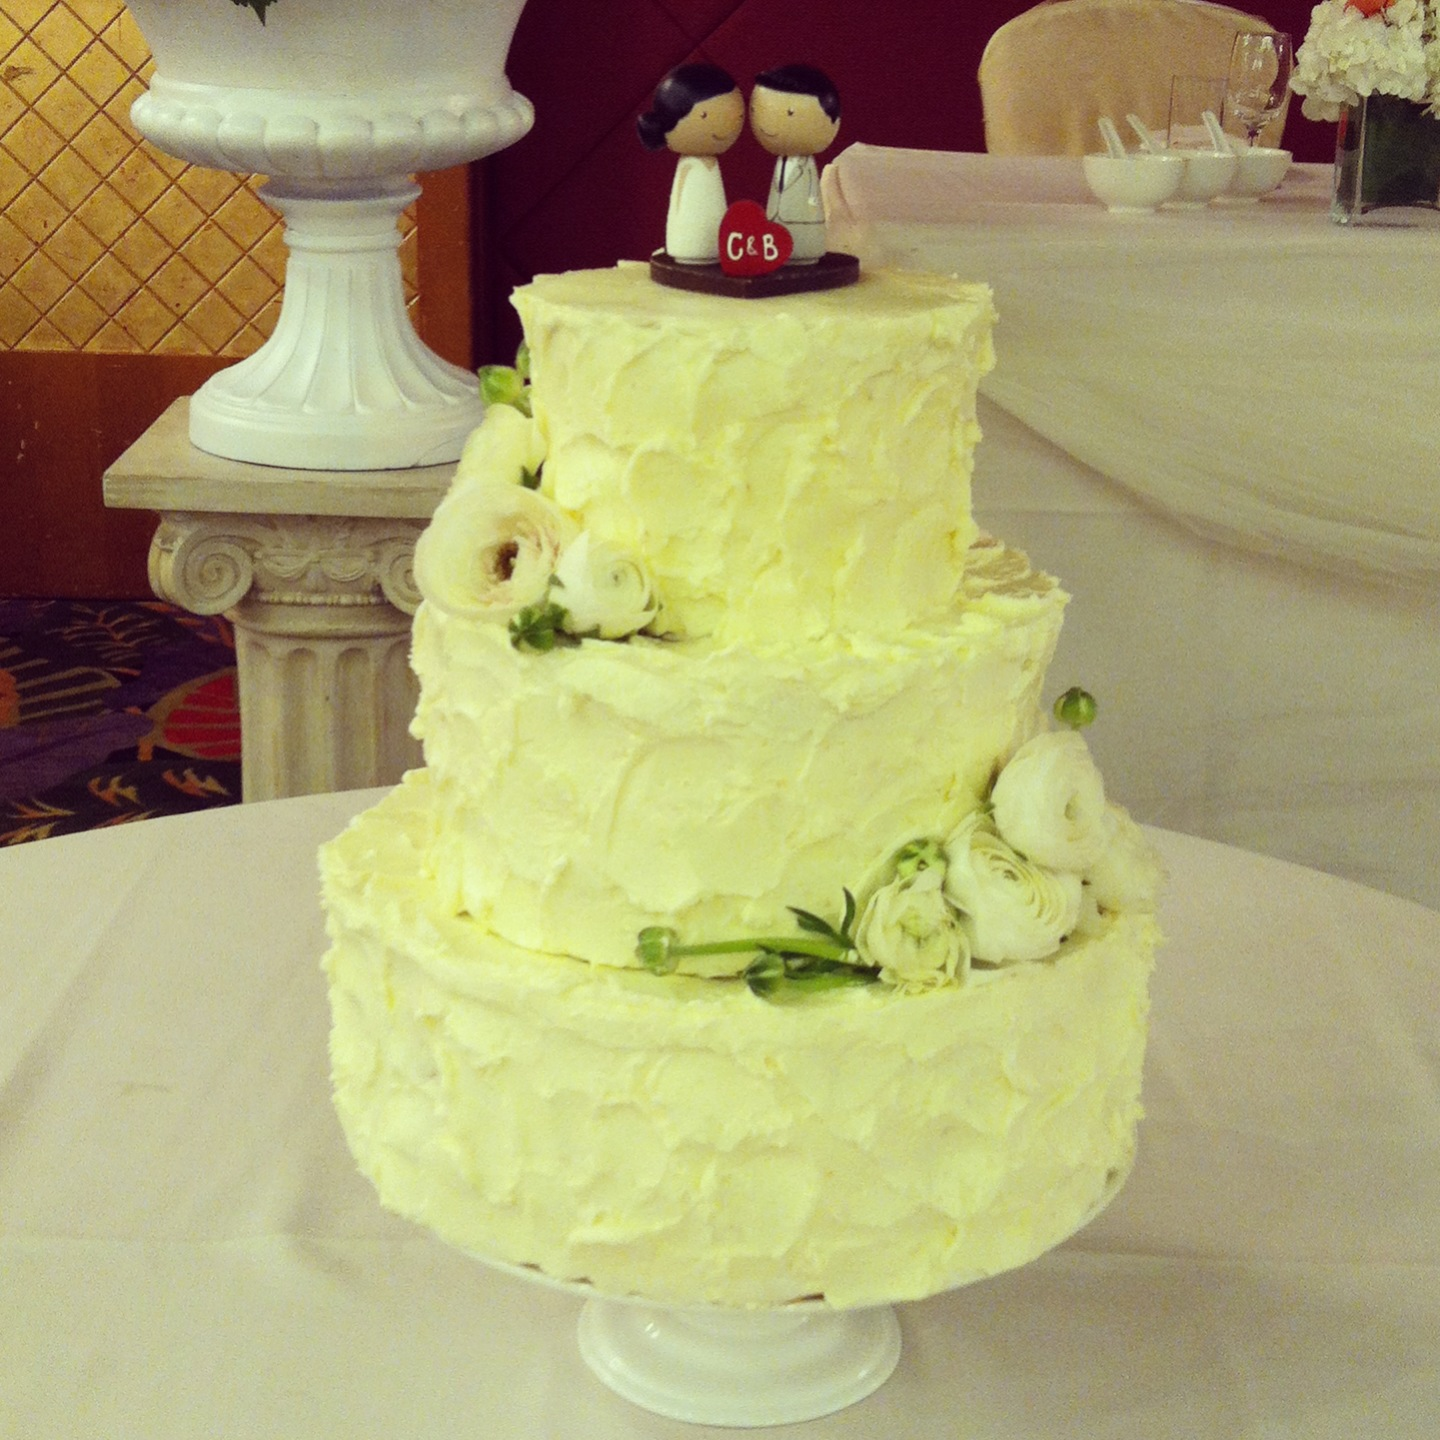 Ivory ranunculus give this cake a fresh look. Check out the cute cake topper! Cake made by Melissa Wong